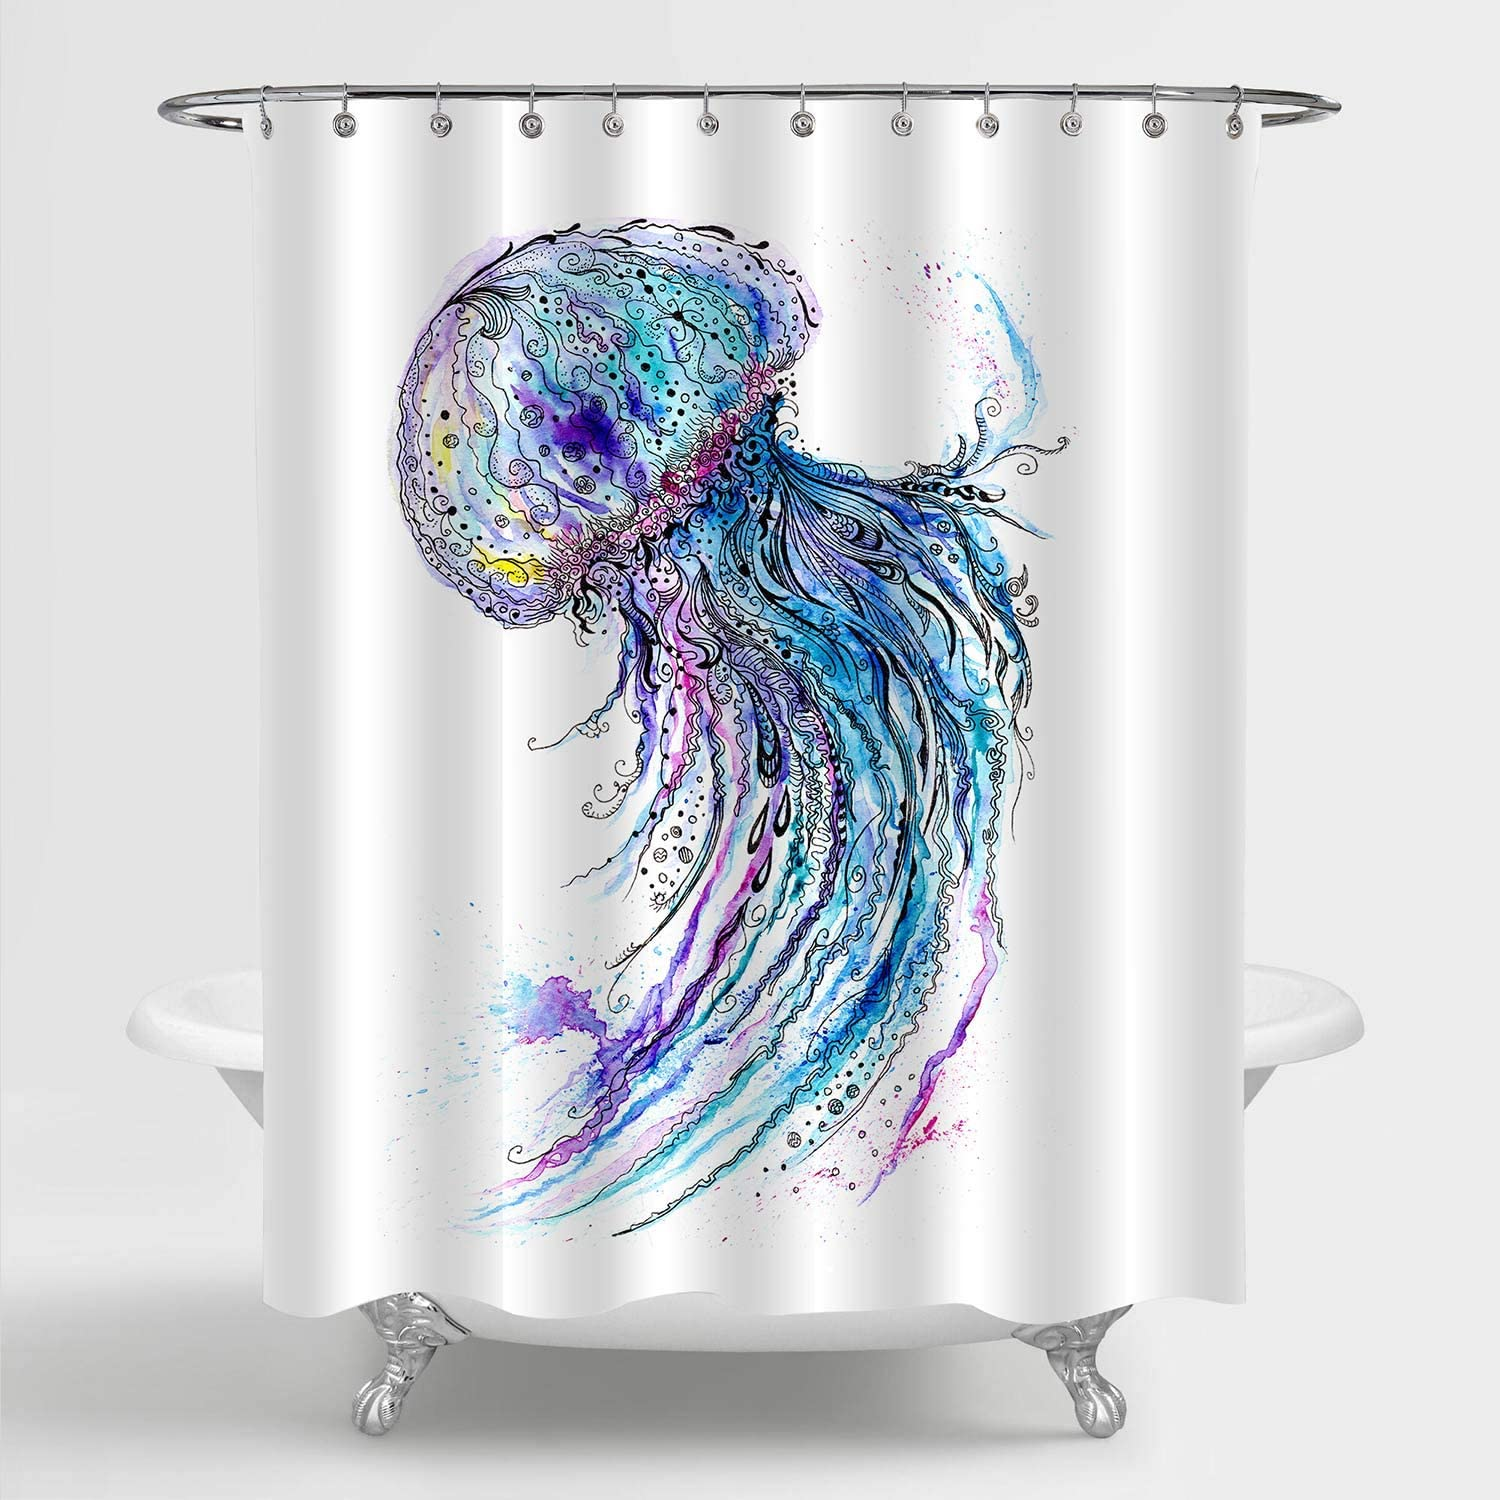 """MitoVilla Watercolor Jellyfish Shower Curtain, Deep Sea Wildlife Medusa Artwork Bathroom Accessories for Tropical Marine Themed Home Decor, Ocean Gifts for Women, Men and Kids, Blue, 72"""" W x 72"""" L"""